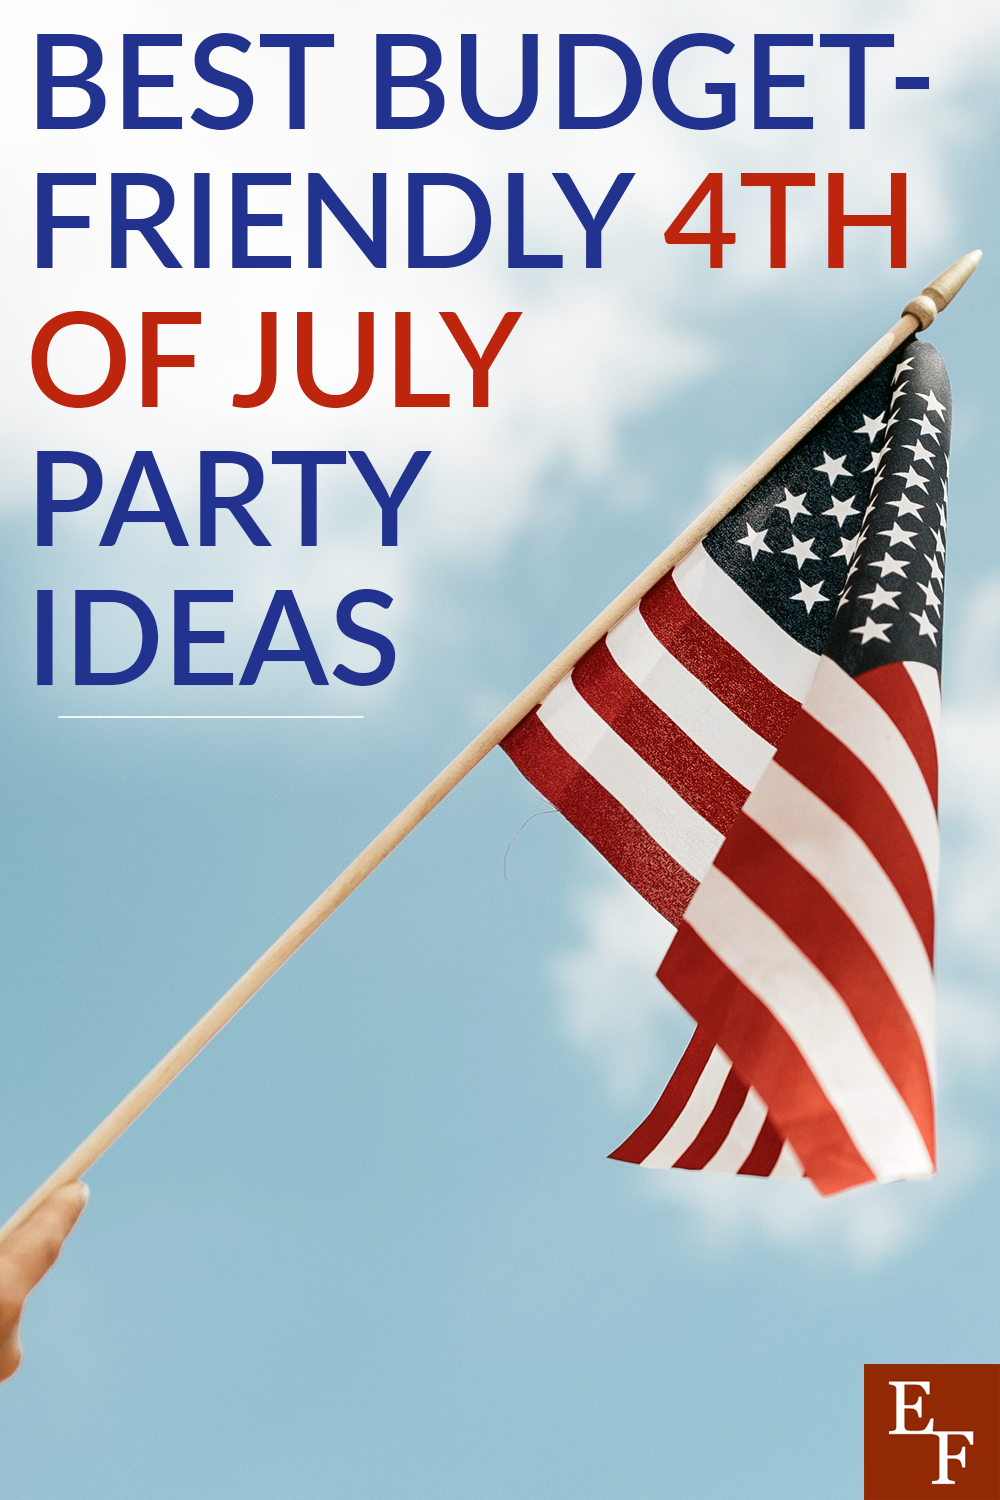 One of the best parts of summer is having a 4th of July party. But how can you make yours budget friendly and still delicious?